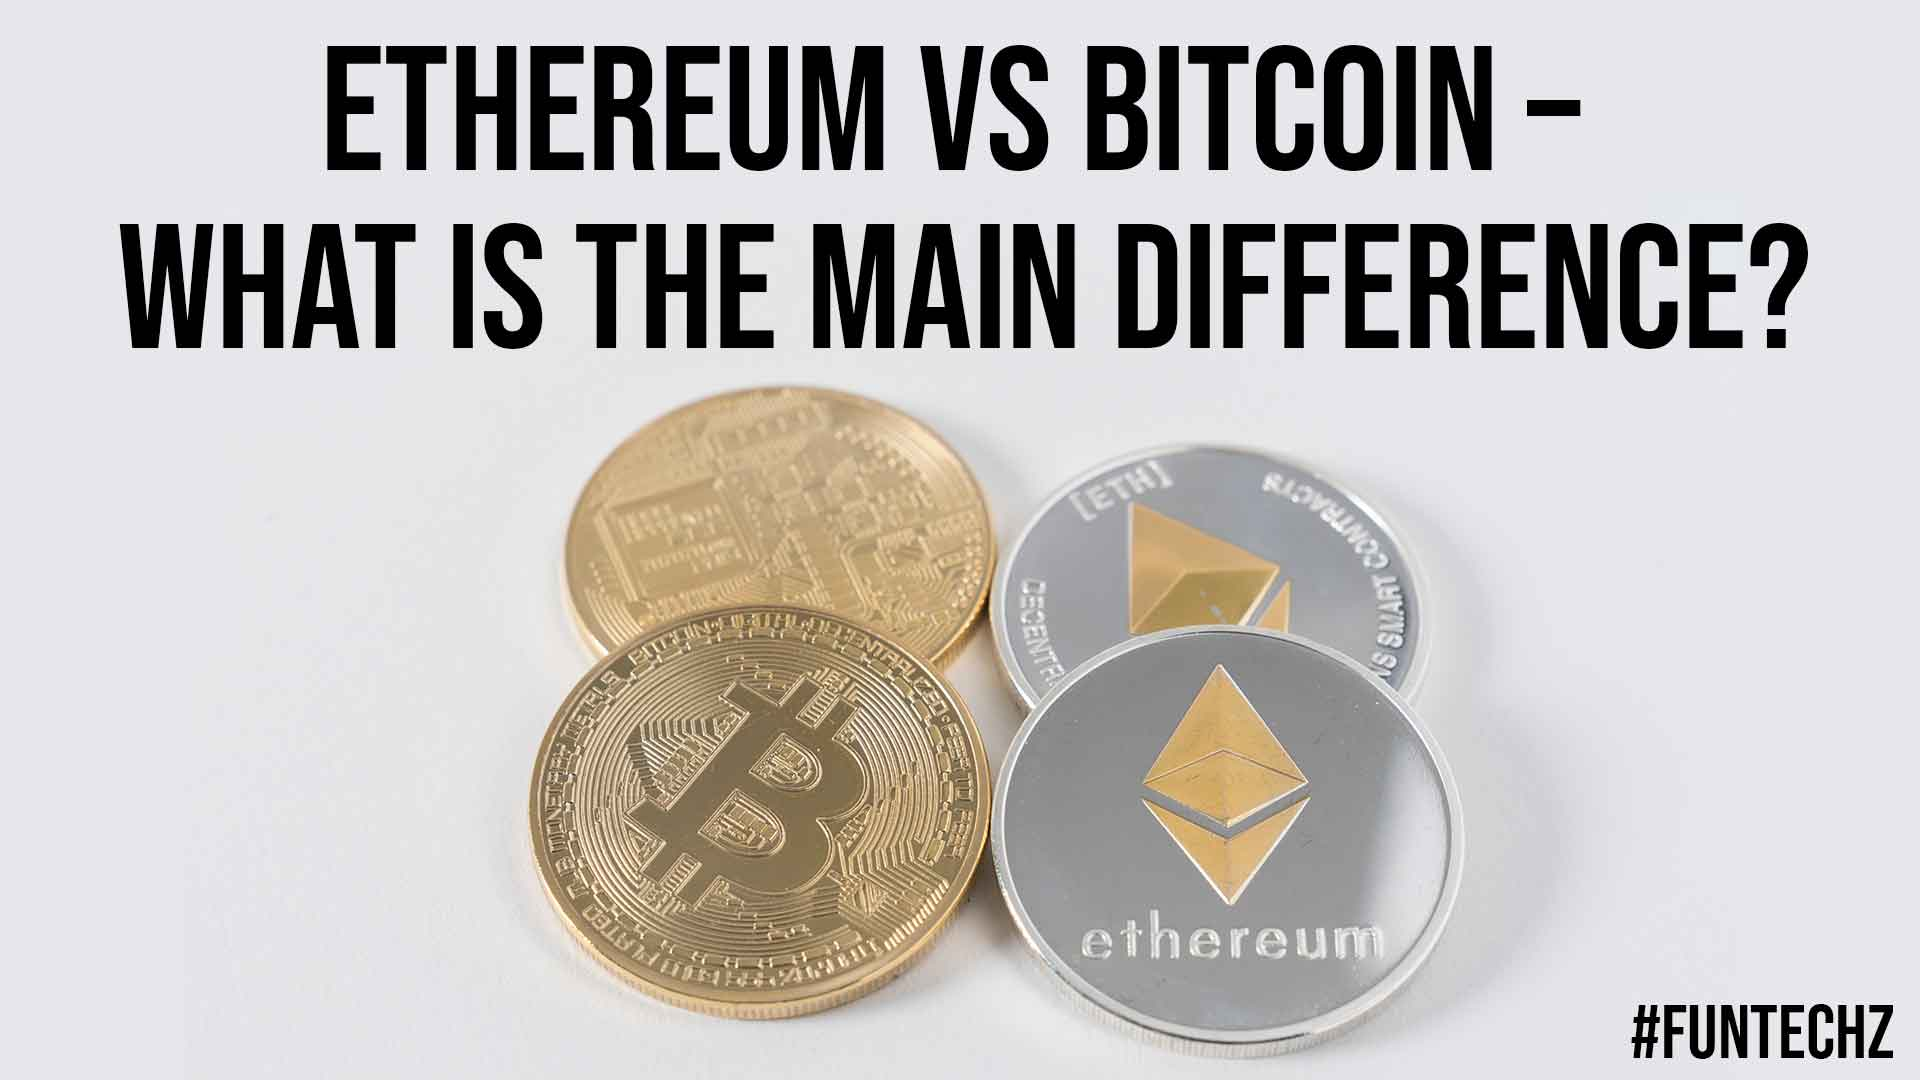 Ethereum vs Bitcoin What is the Main Difference